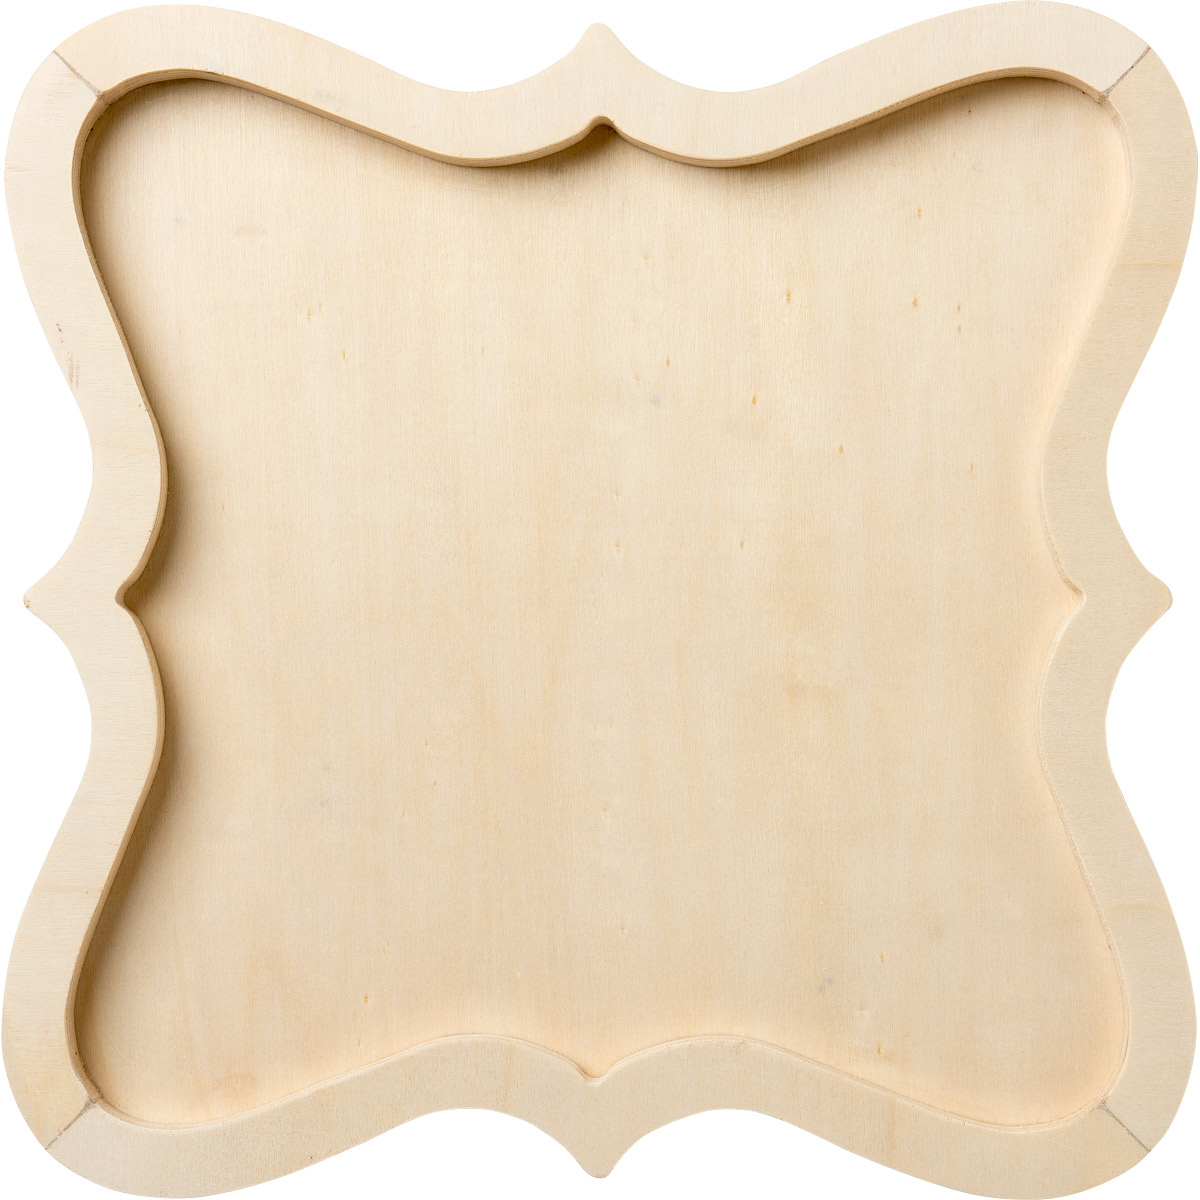 Plaid ® Wood Surfaces - Plaques - Scalloped Panel, 12